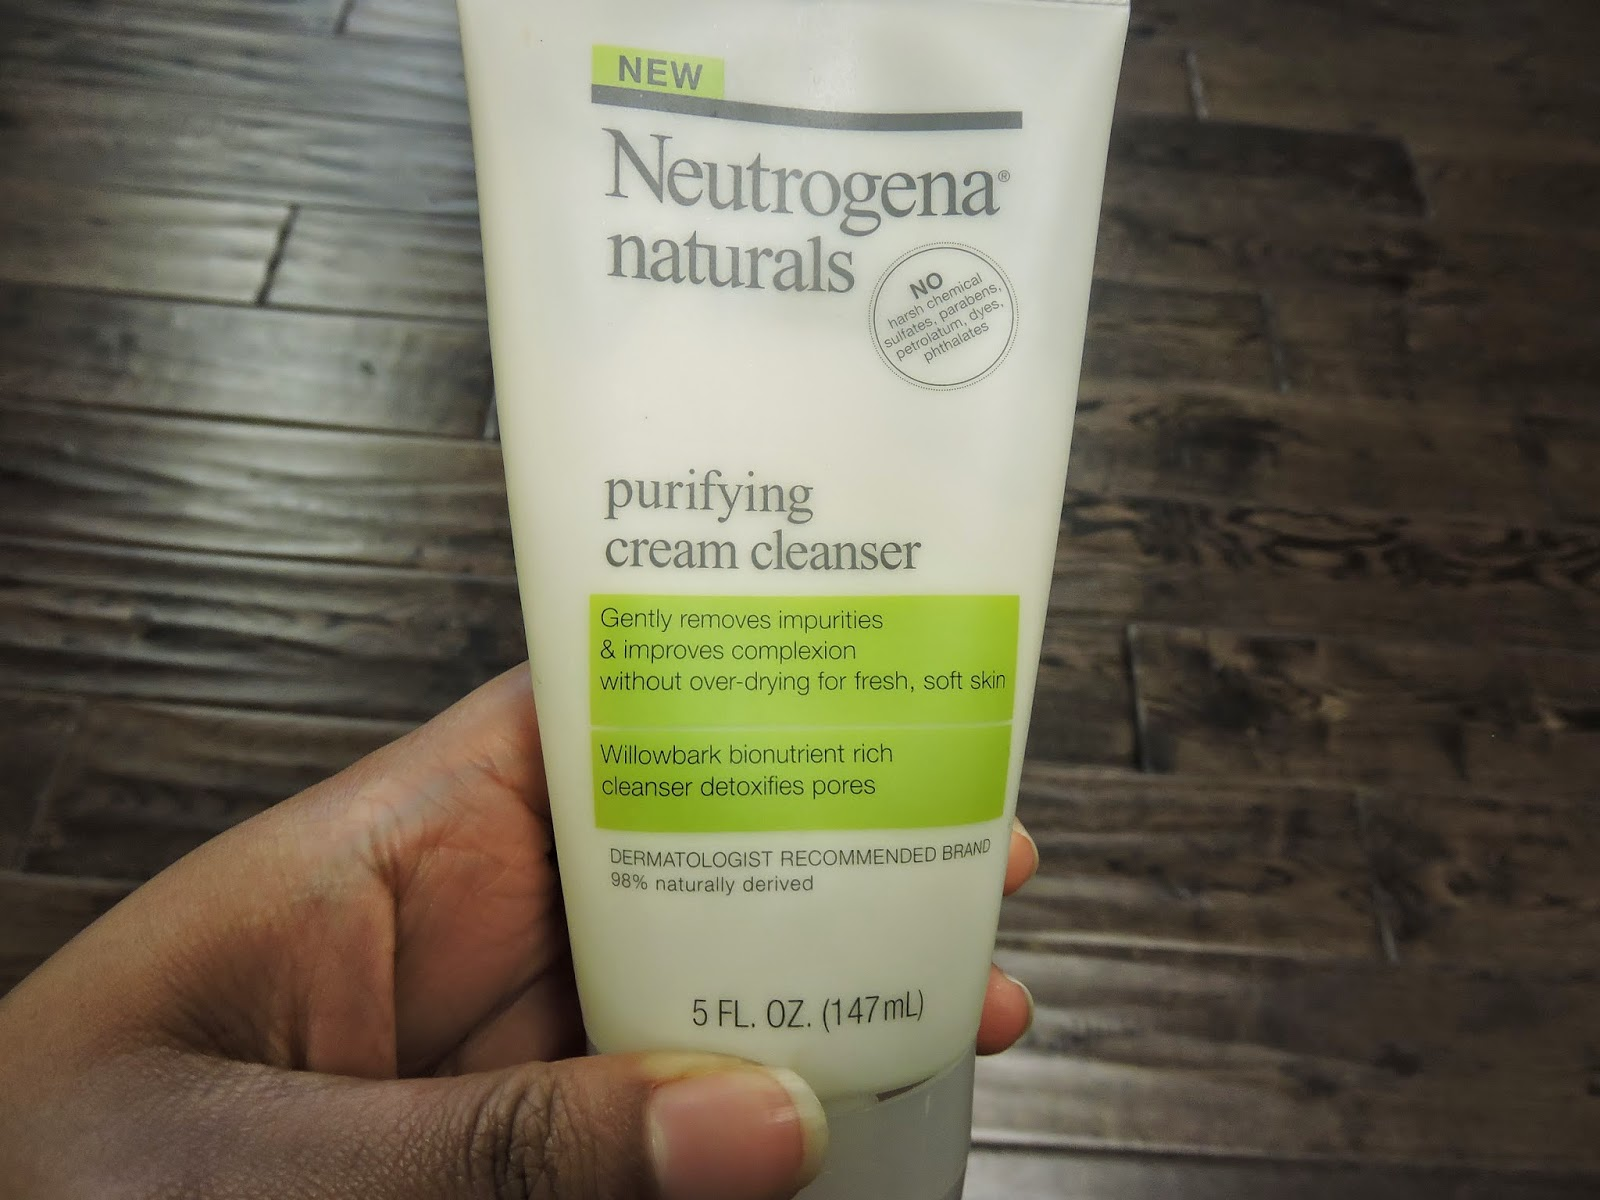 Neutrogena Naturals Purifying Cream Cleanser Review and Giveaway Ends 9/4 #KnowYourNaturals #gotitfree via www.Productreviewmom.com